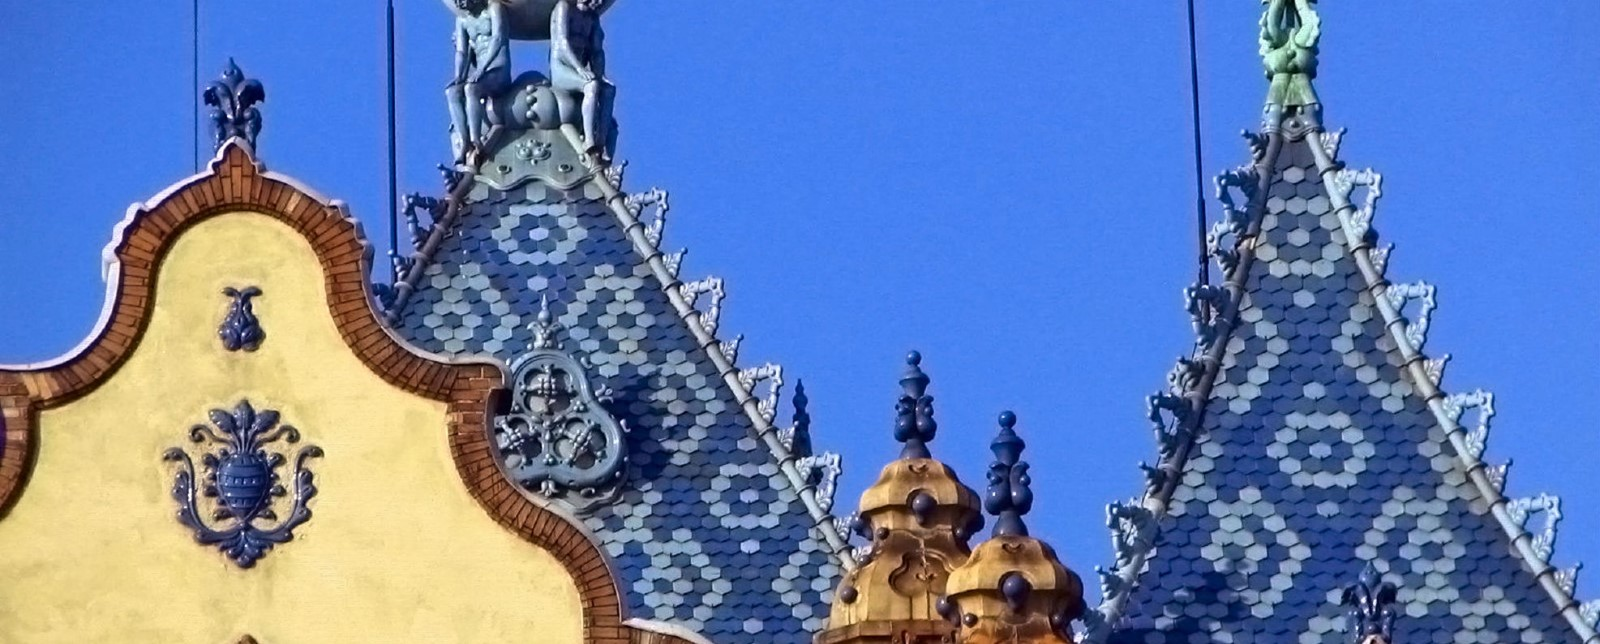 The blue tiled roof of the Geological Institute